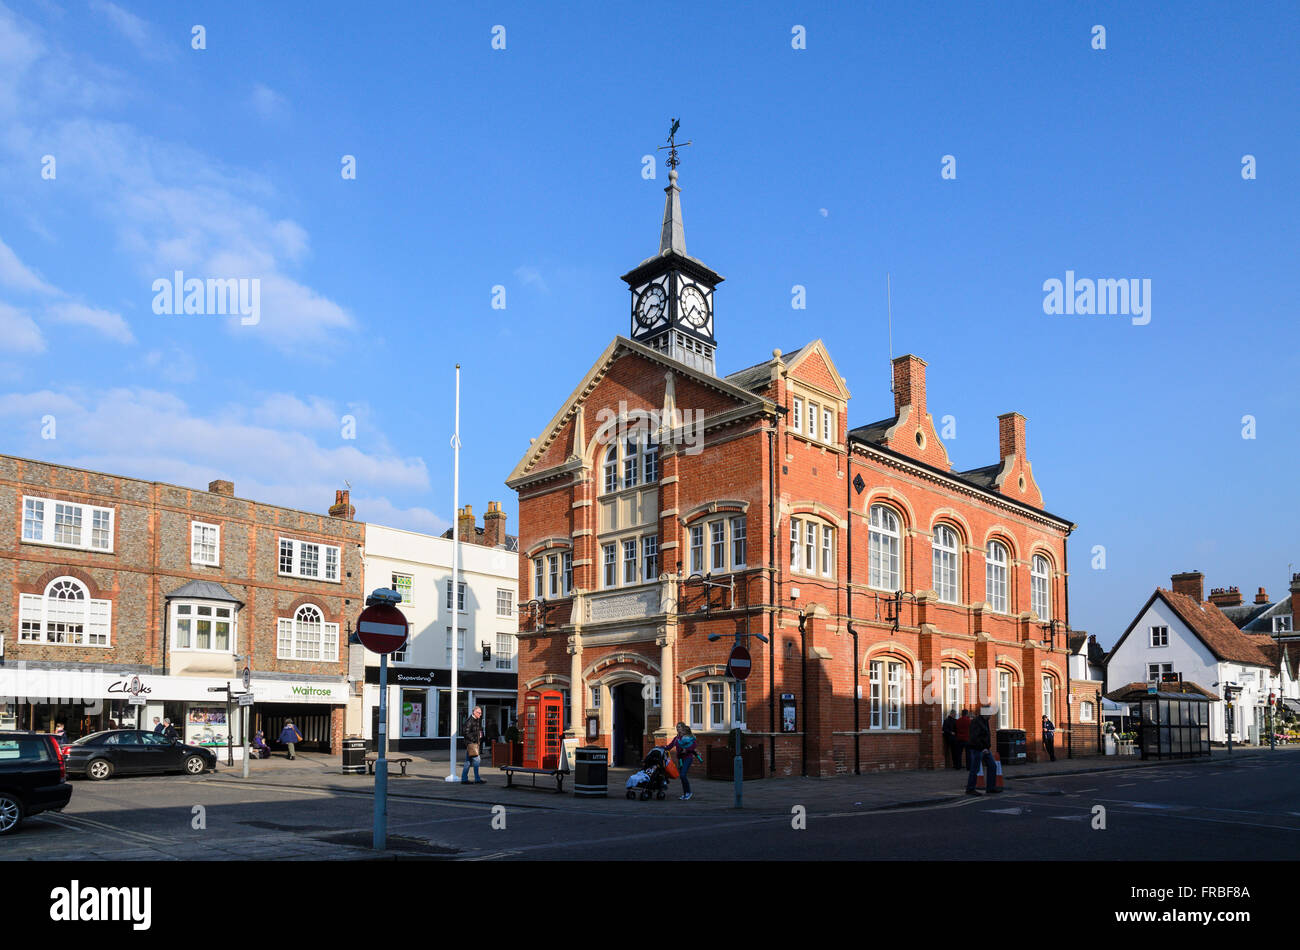 The Town Hall, home of Town Council, High Street, Thame, Oxfordshire, England, UK.Stock Photo